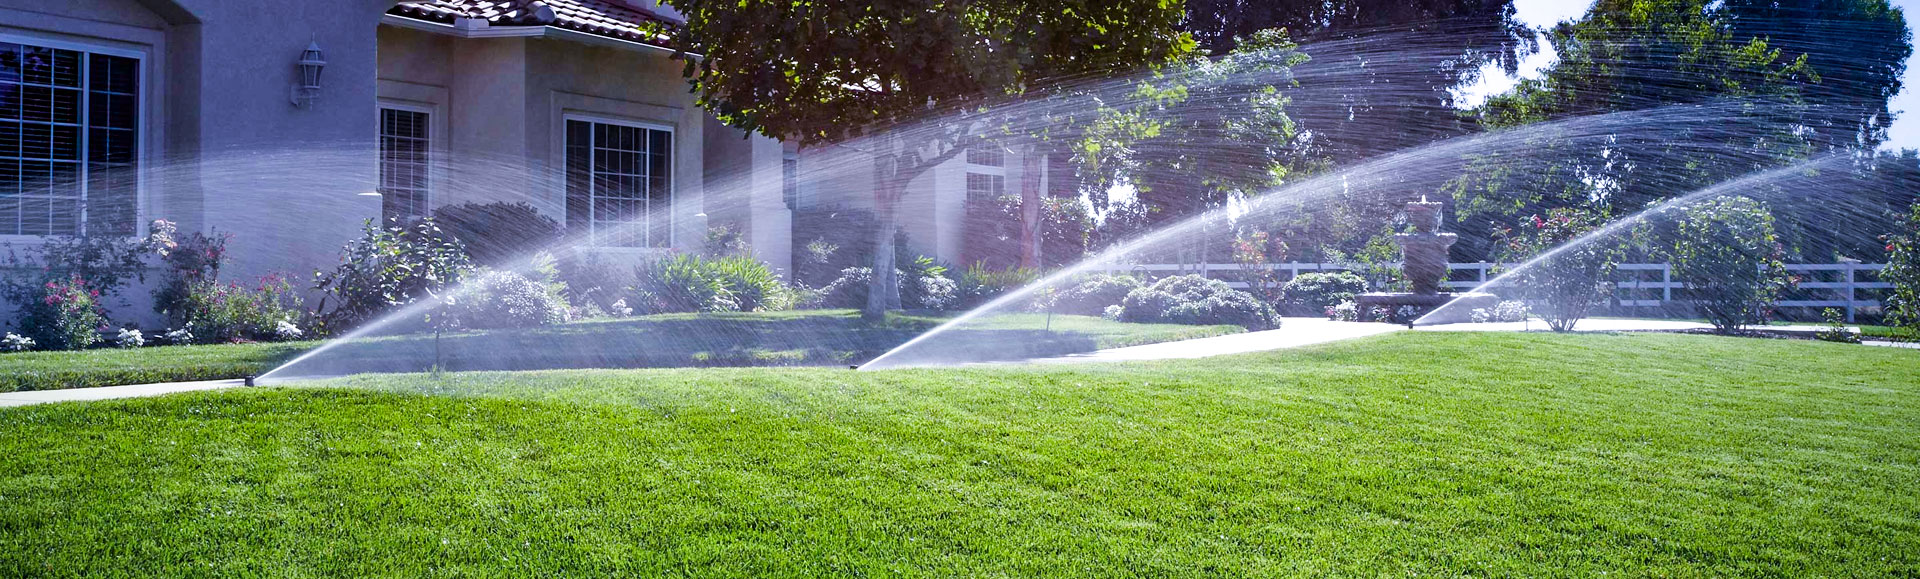 Smart watering solution - Mainstay